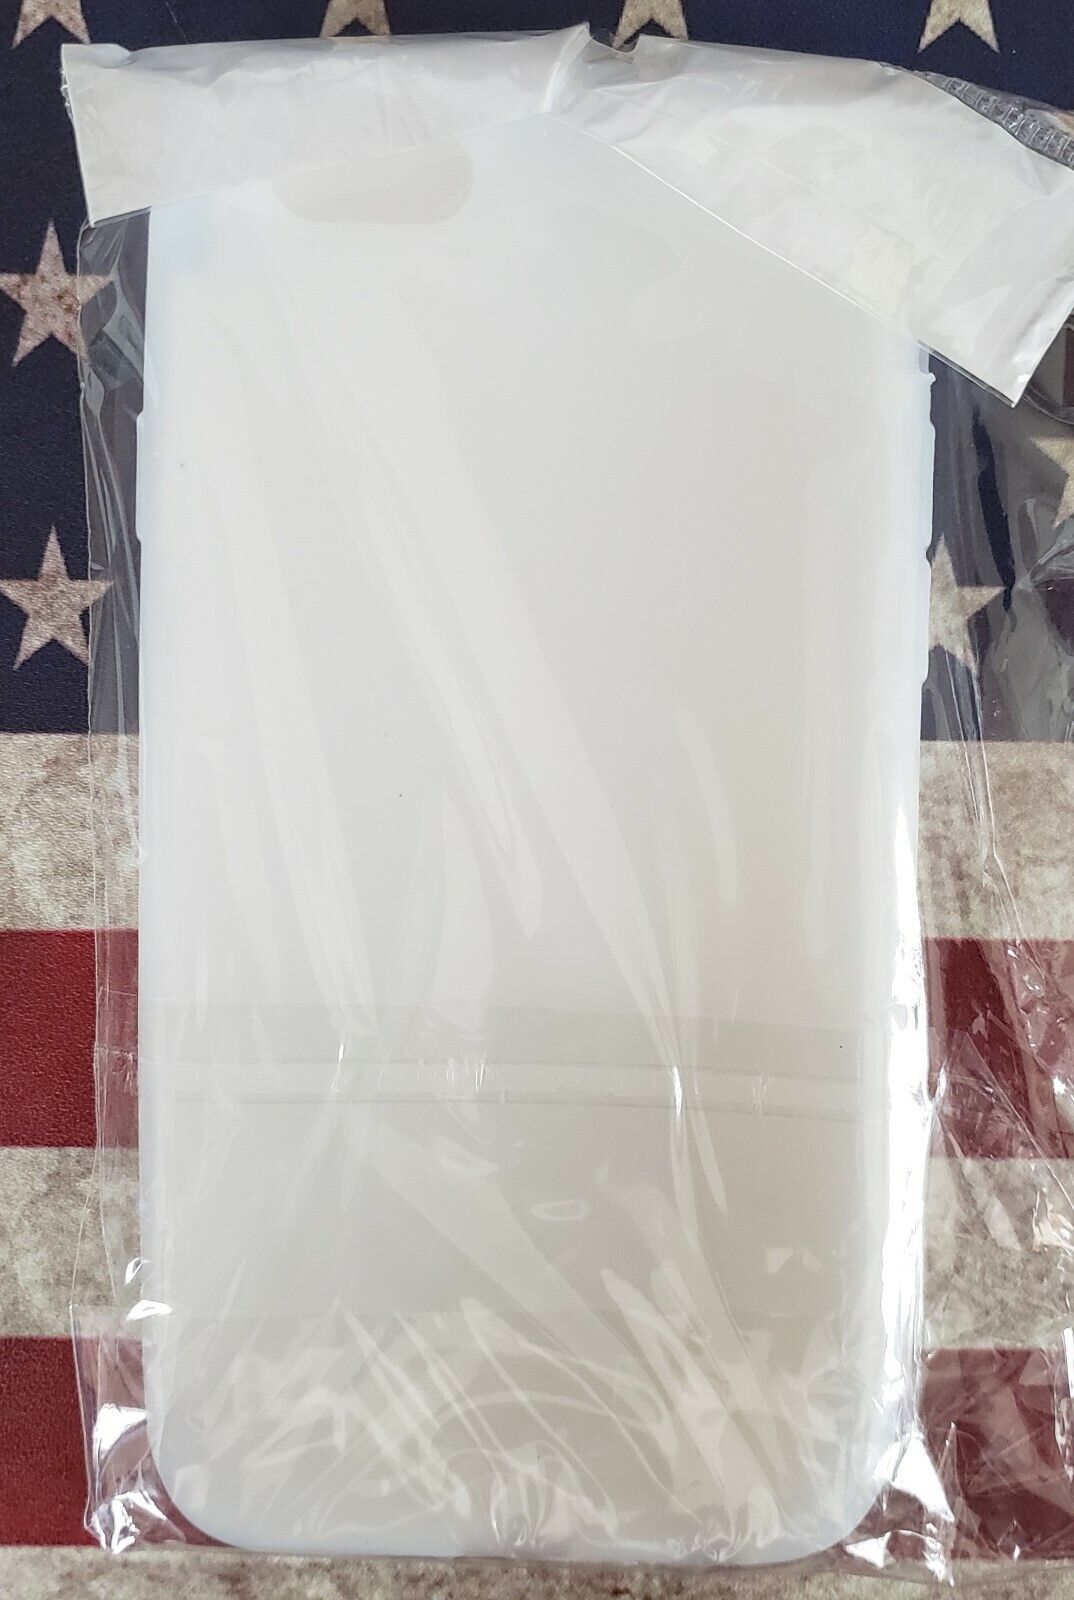 Iphone 6 Case Cover OnTek Clear / White Silicone New In Package - $6.99